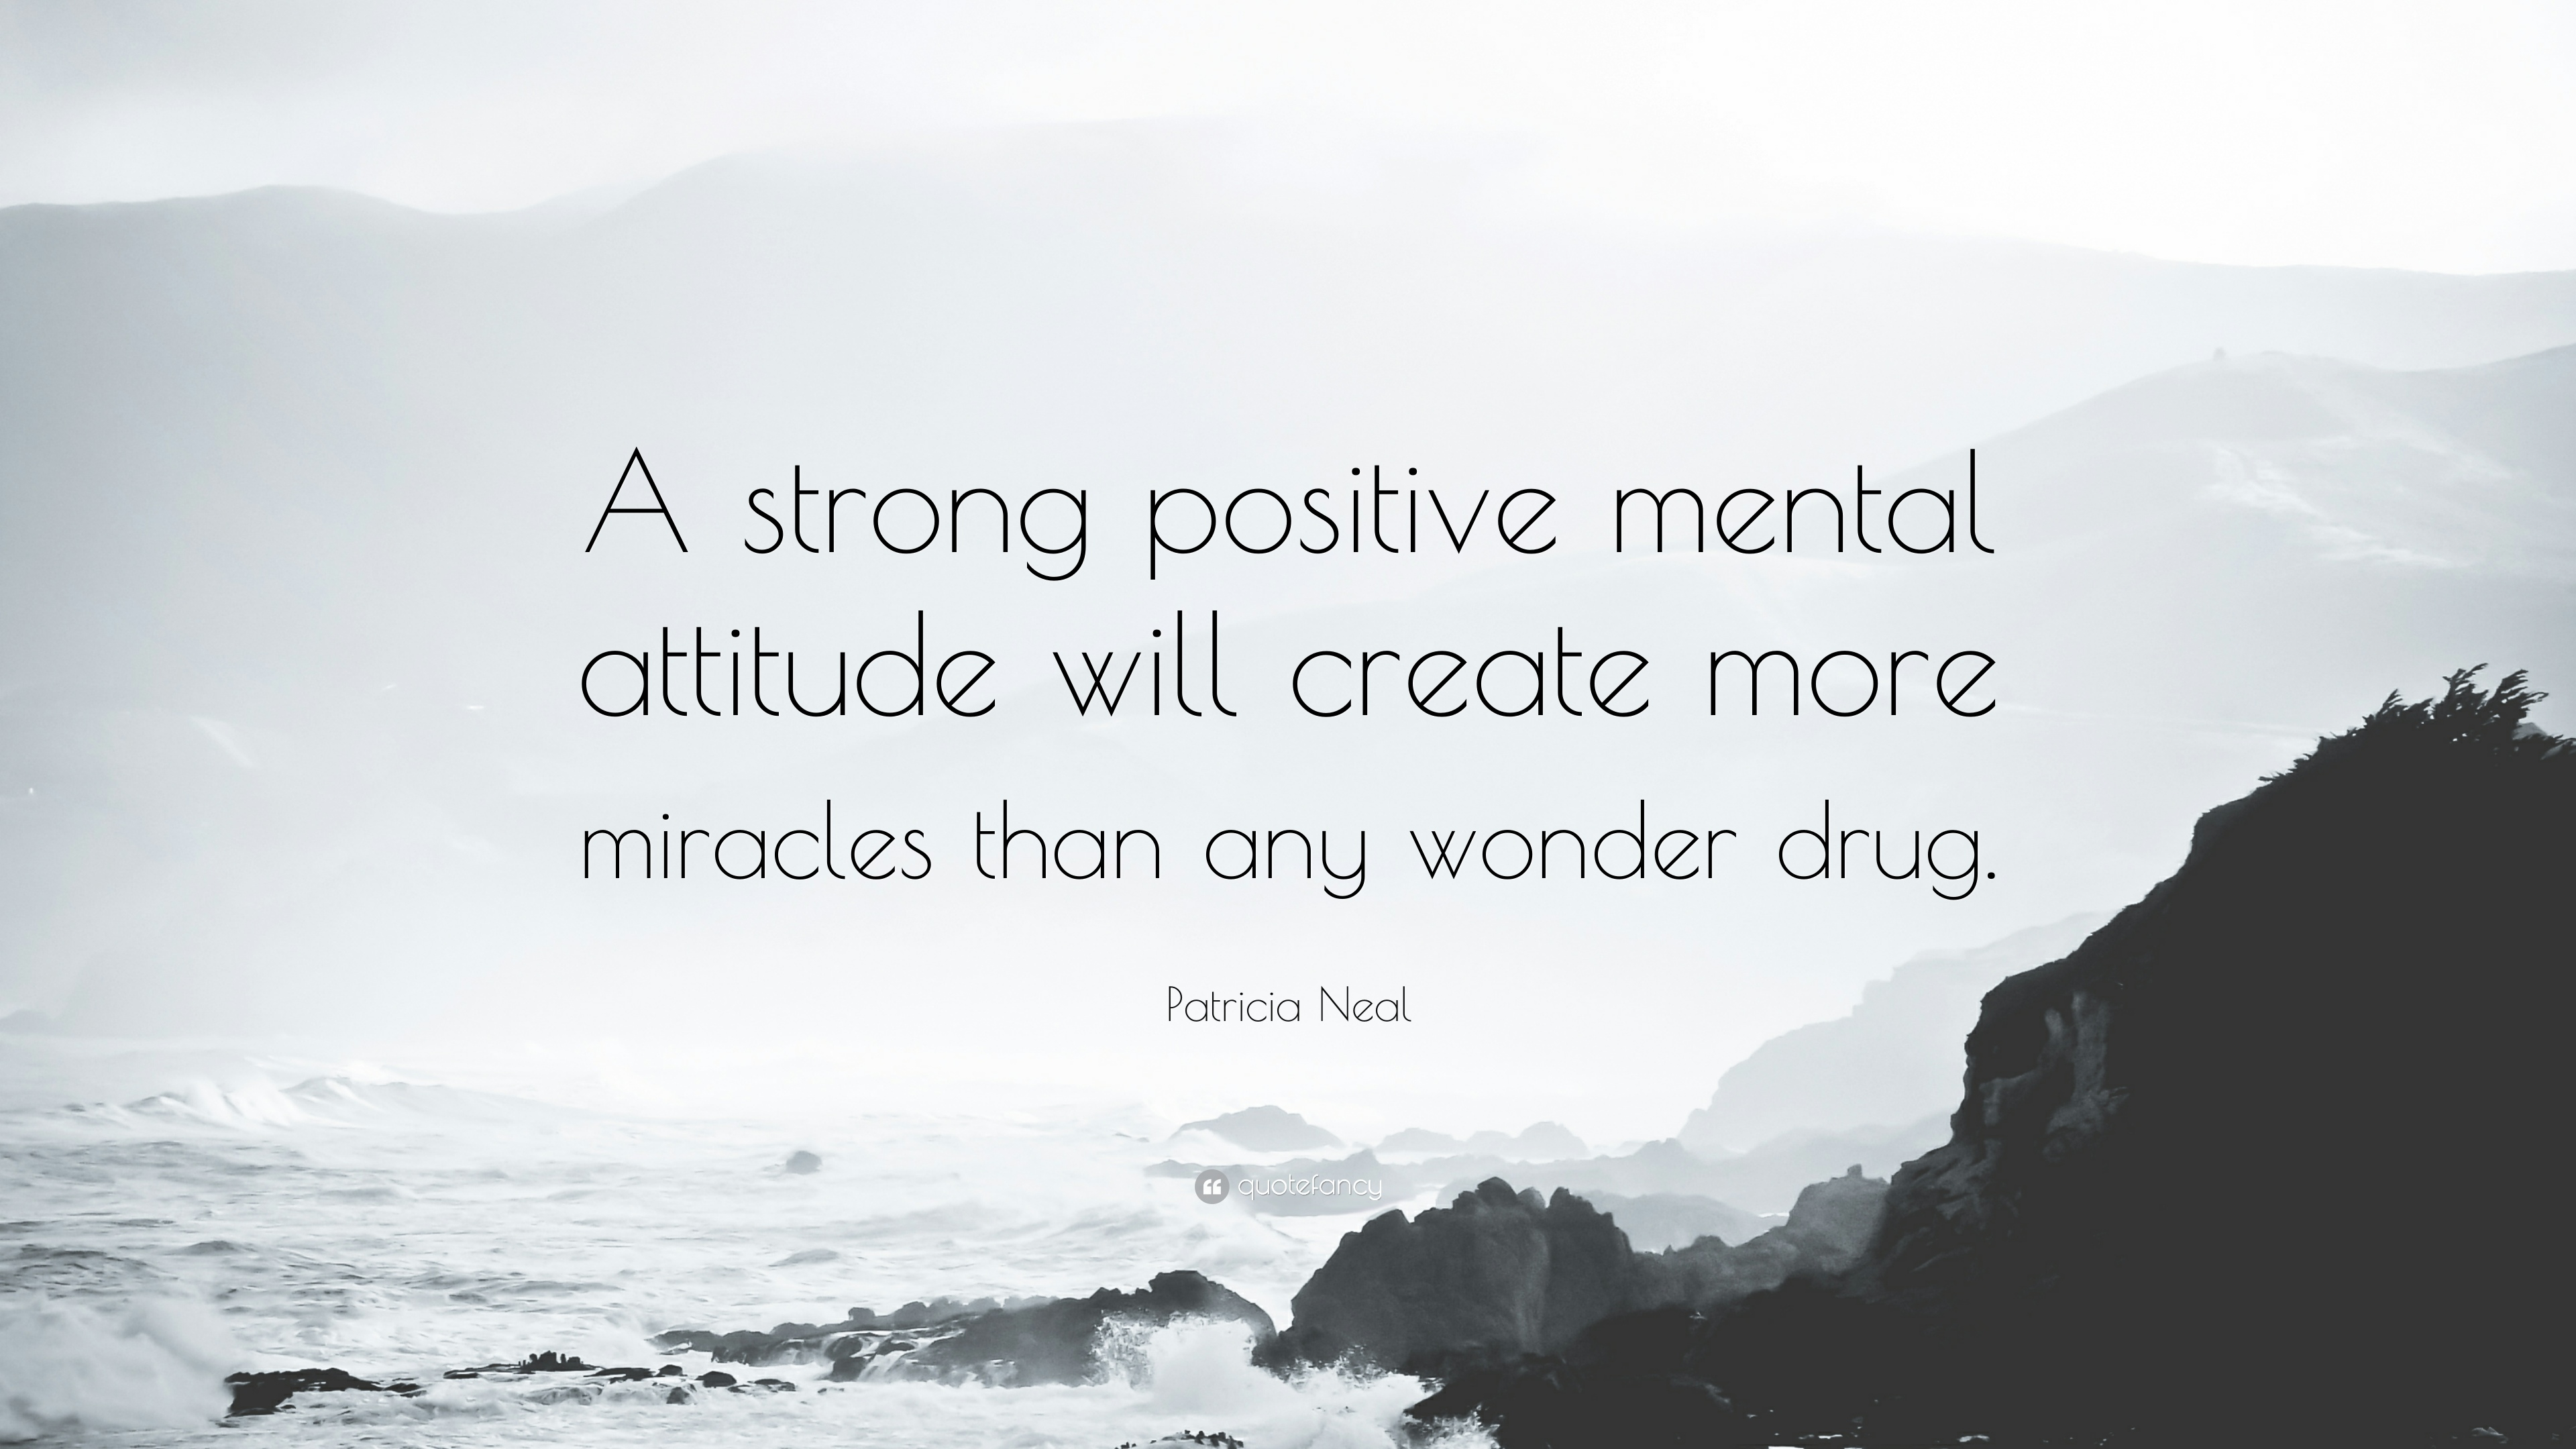 47143-Patricia-Neal-Quote-A-strong-positive-mental-attitude-will-create